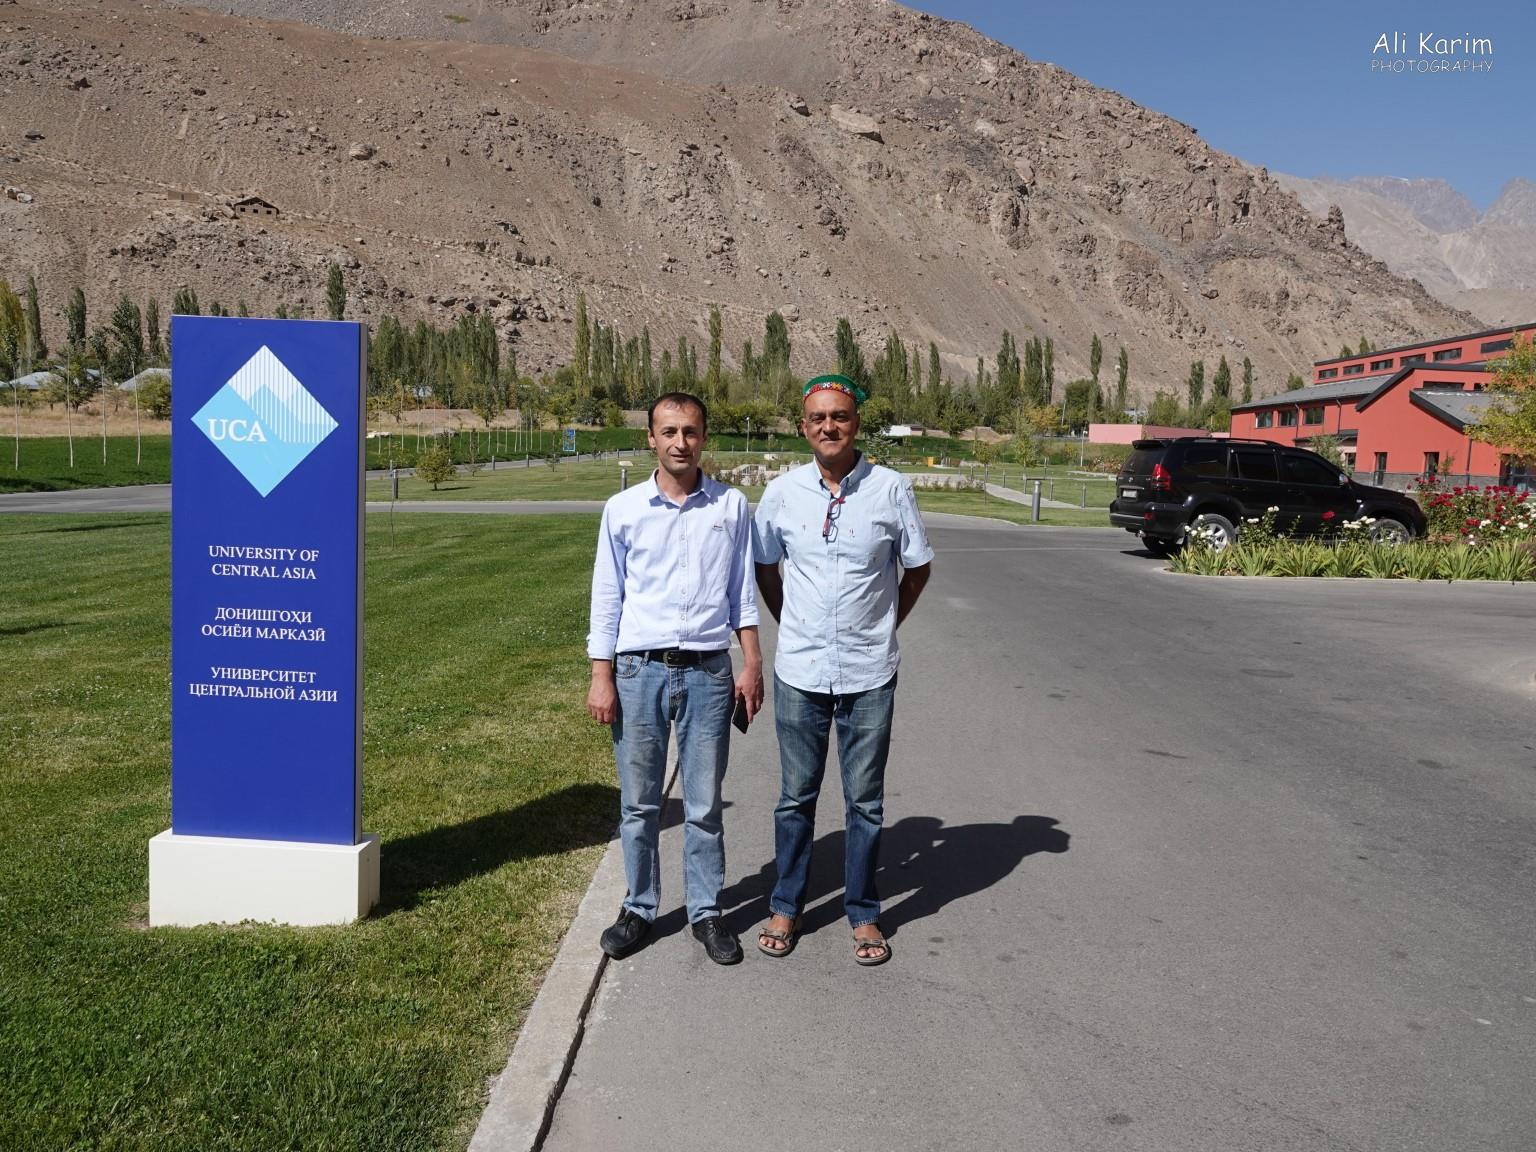 More Khorog, Tajikistan With Zulov, my host and guide, at the UCA Khorog campus entrance